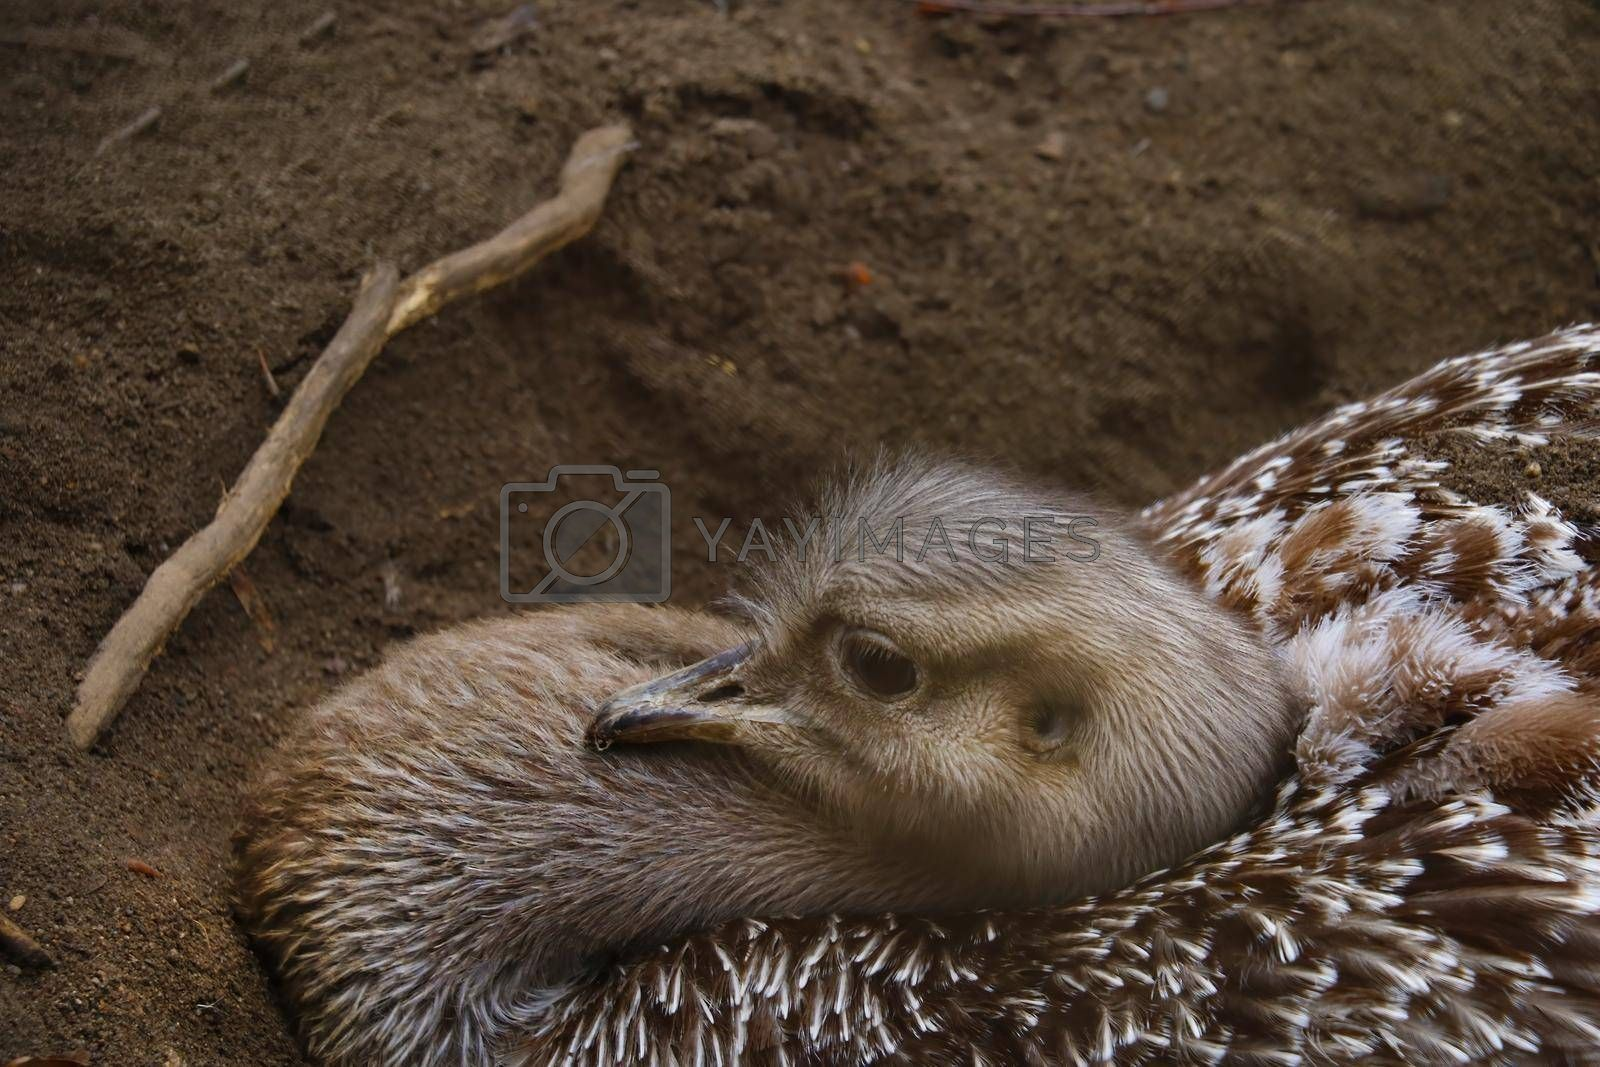 Royalty free image of Close-up on the head of an ostrich sitting on eggs in the sand. by kip02kas